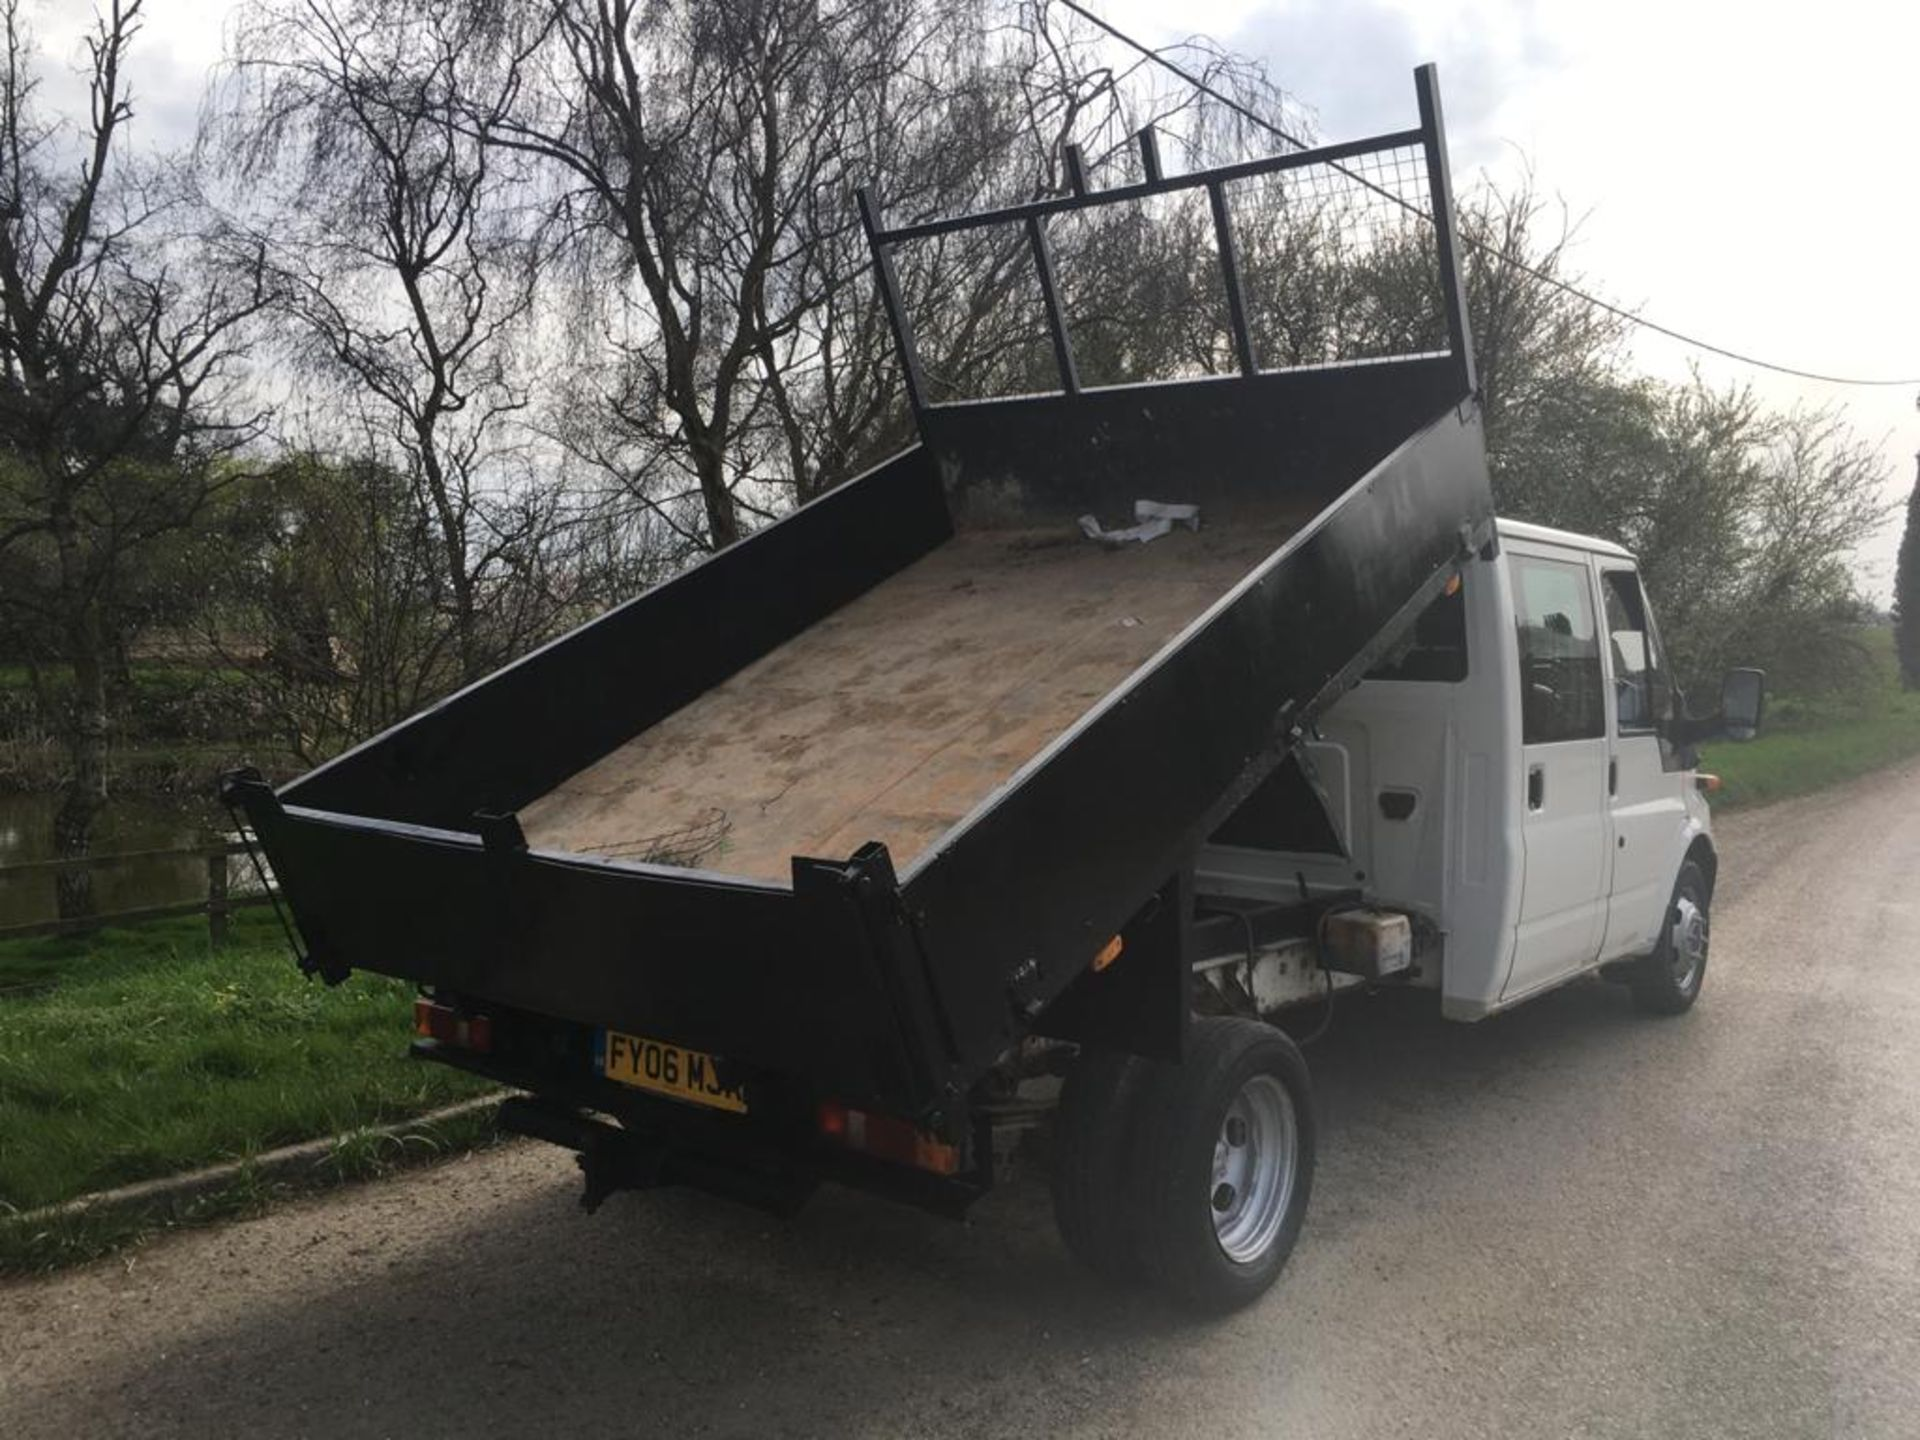 2006 FORD TRANSIT DOUBLE CAB TIPPER - Image 8 of 22